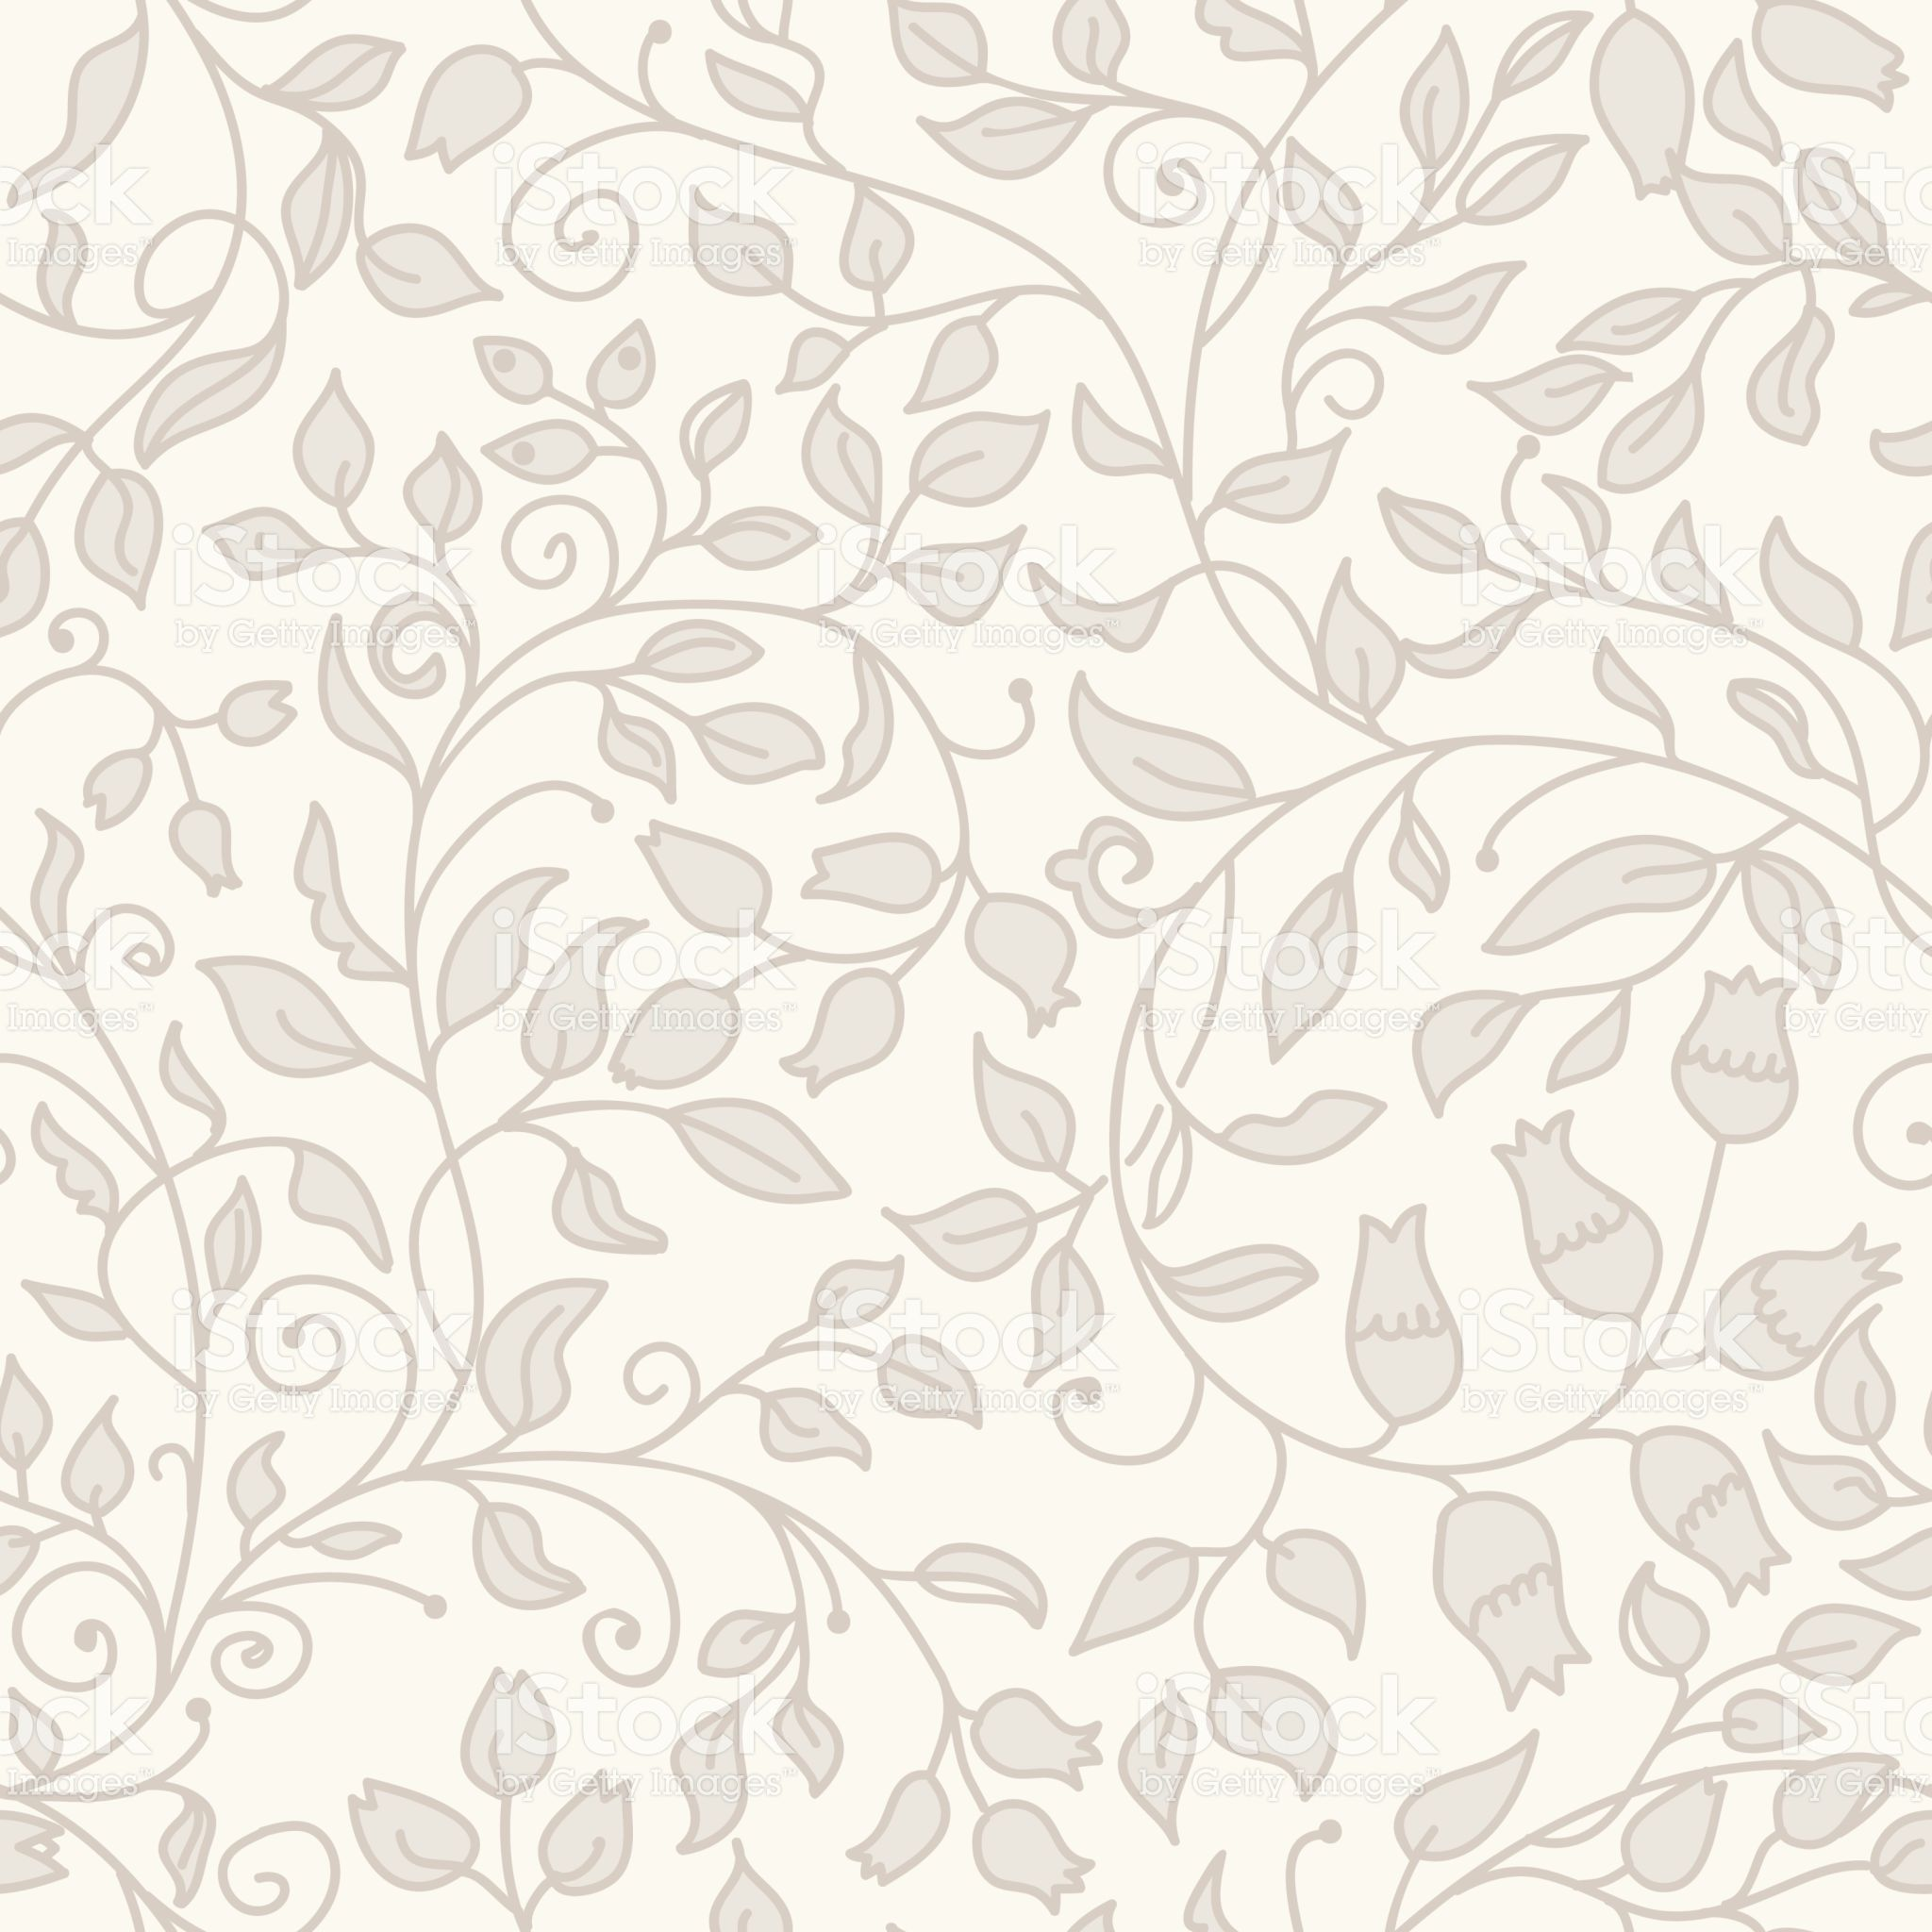 Seamless floral pattern in folk style with flowers, leaves